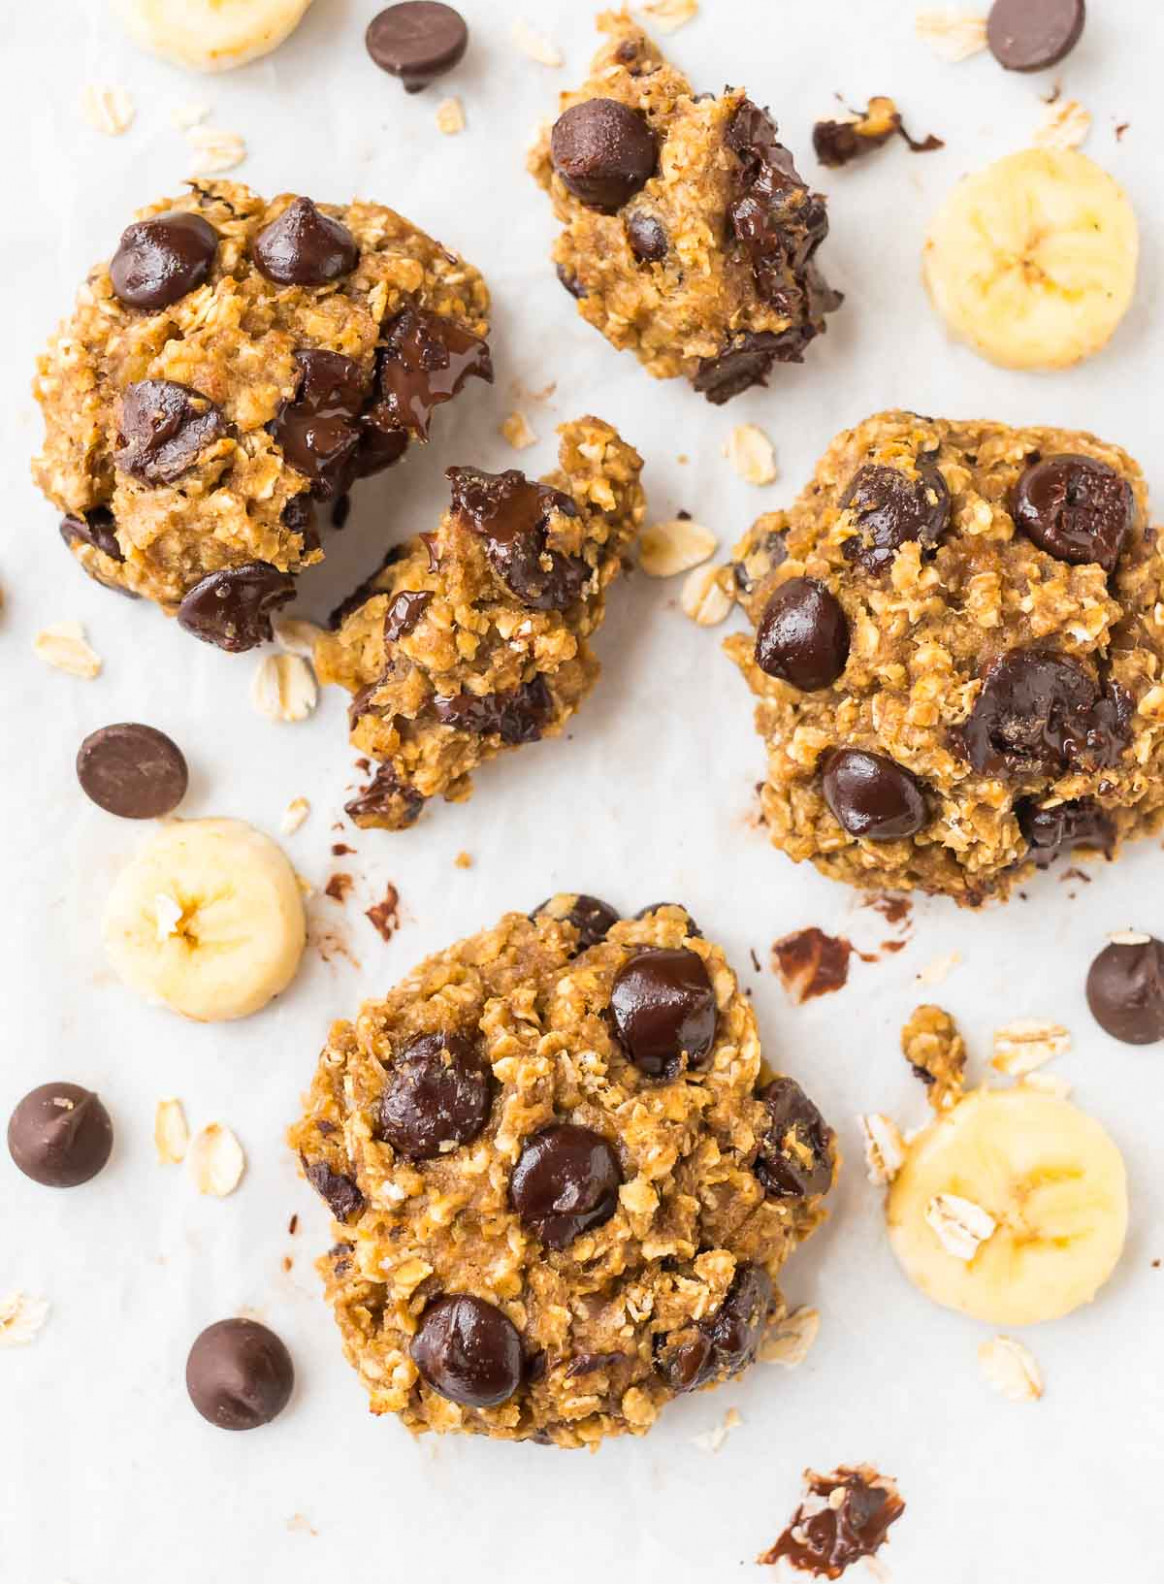 Banana Oatmeal Cookies with Chocolate Chips - healthy recipes ripe bananas